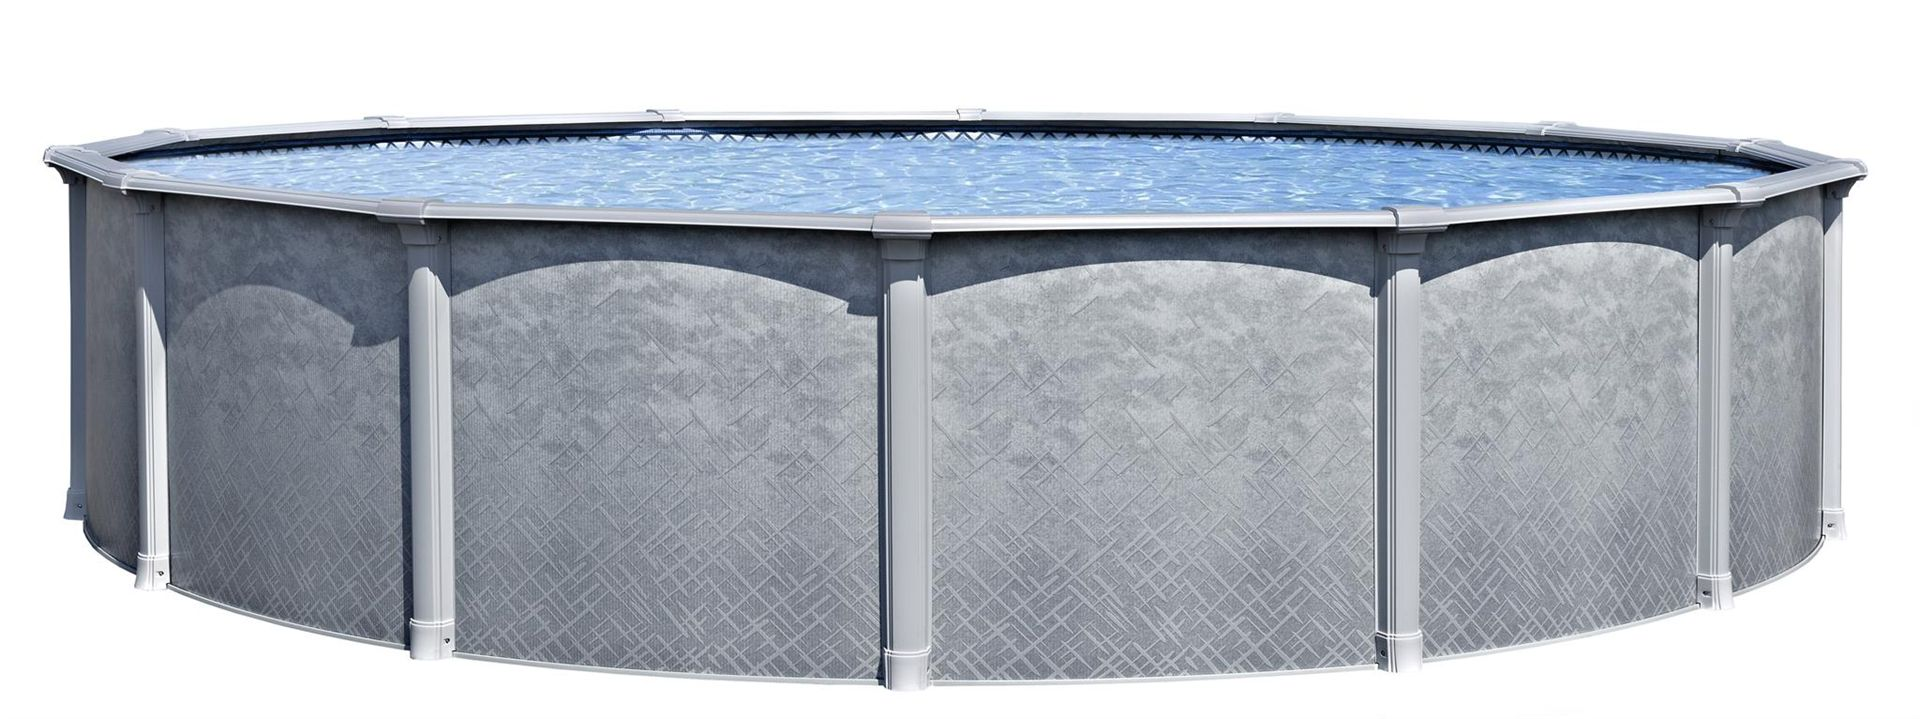 Summerfields by Sharkline Pools at Zagers